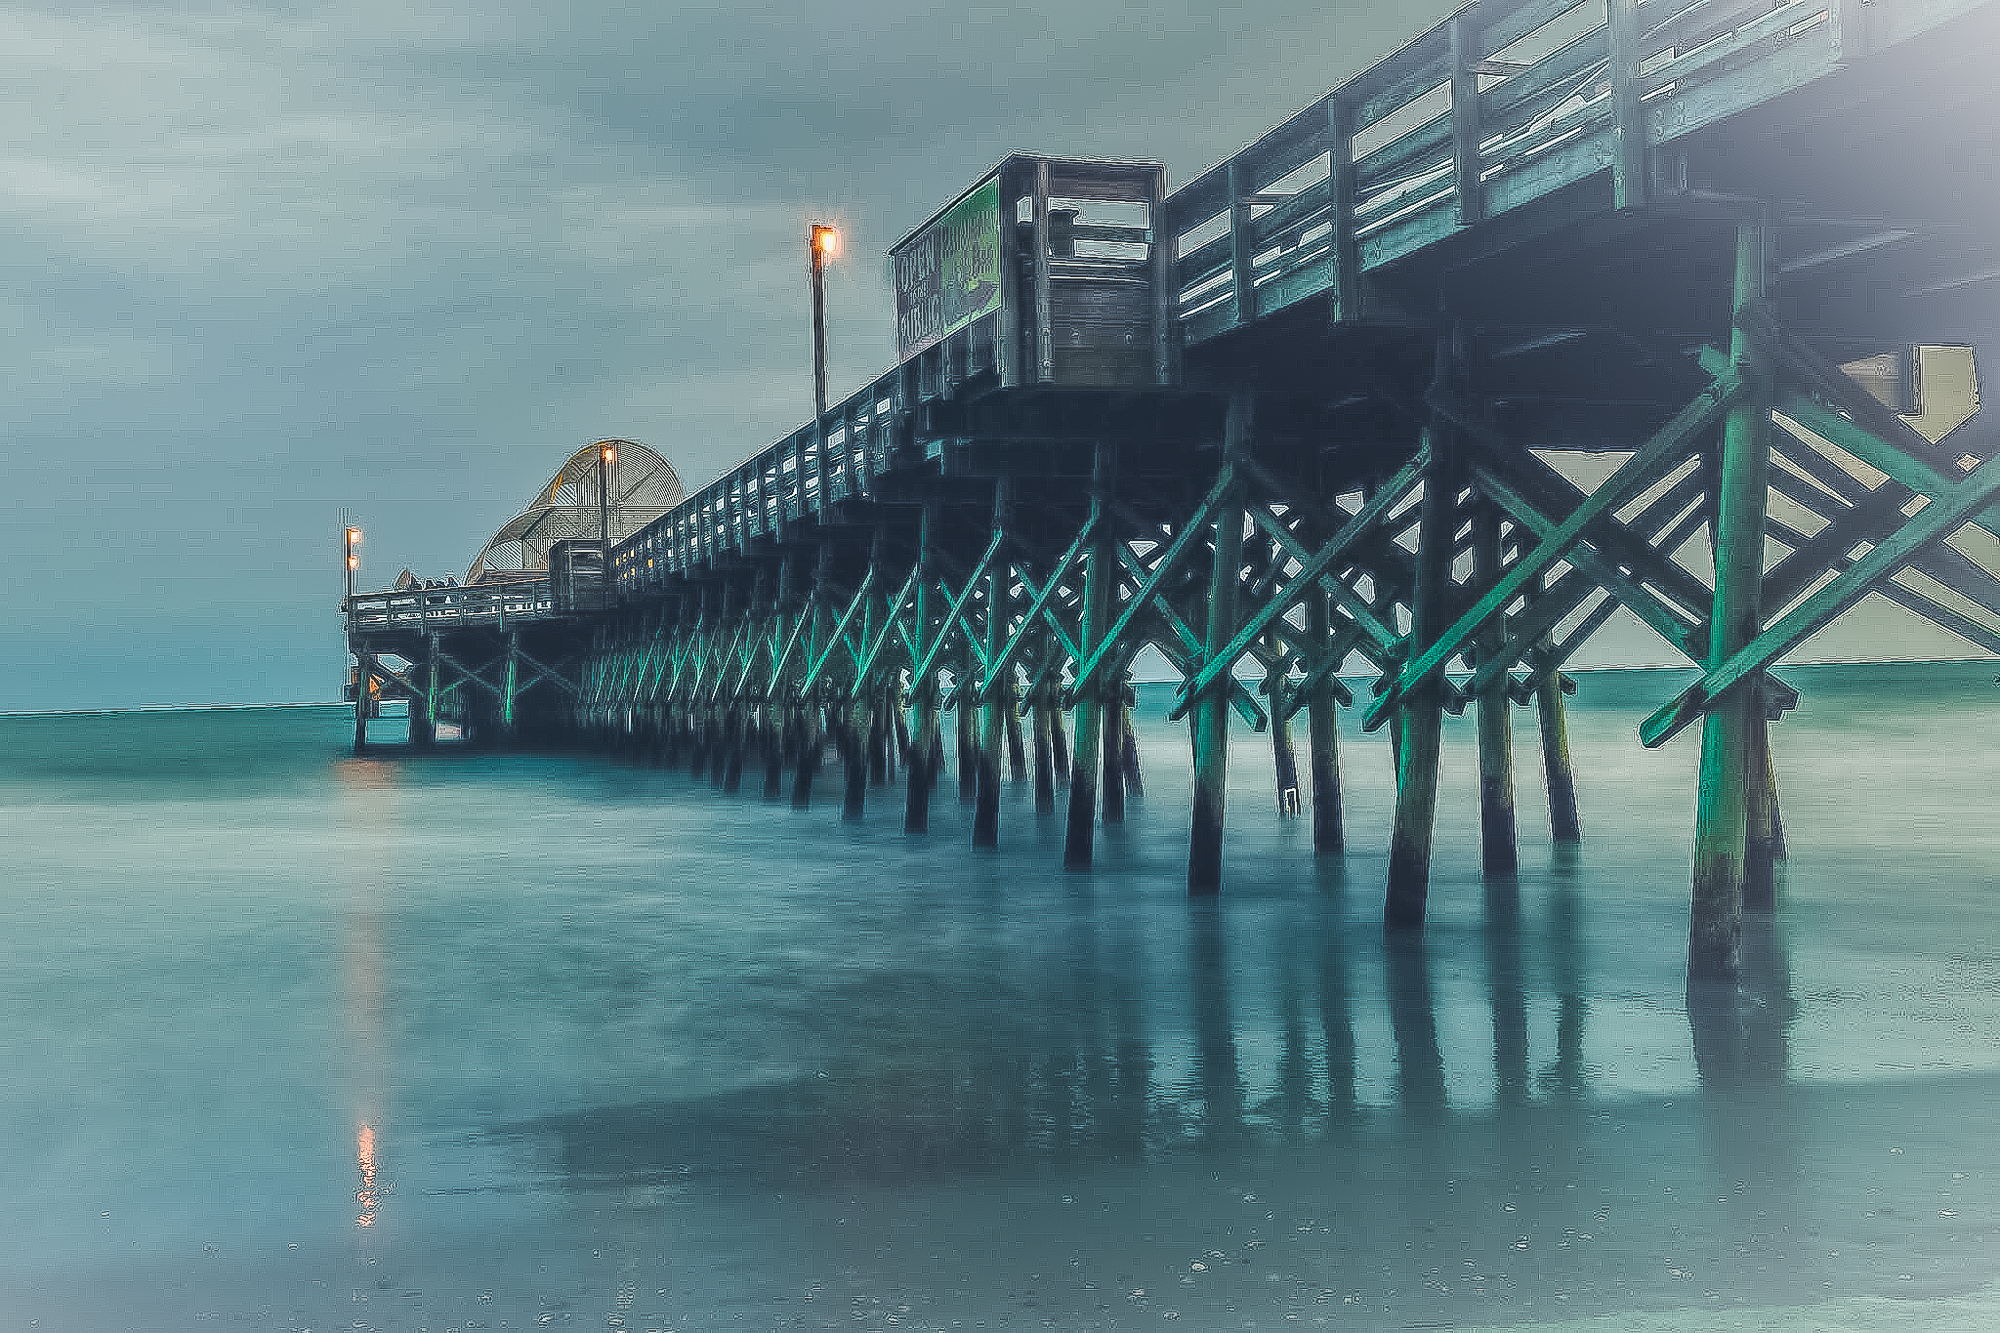 58057F - Apache Pier - Green Hue at